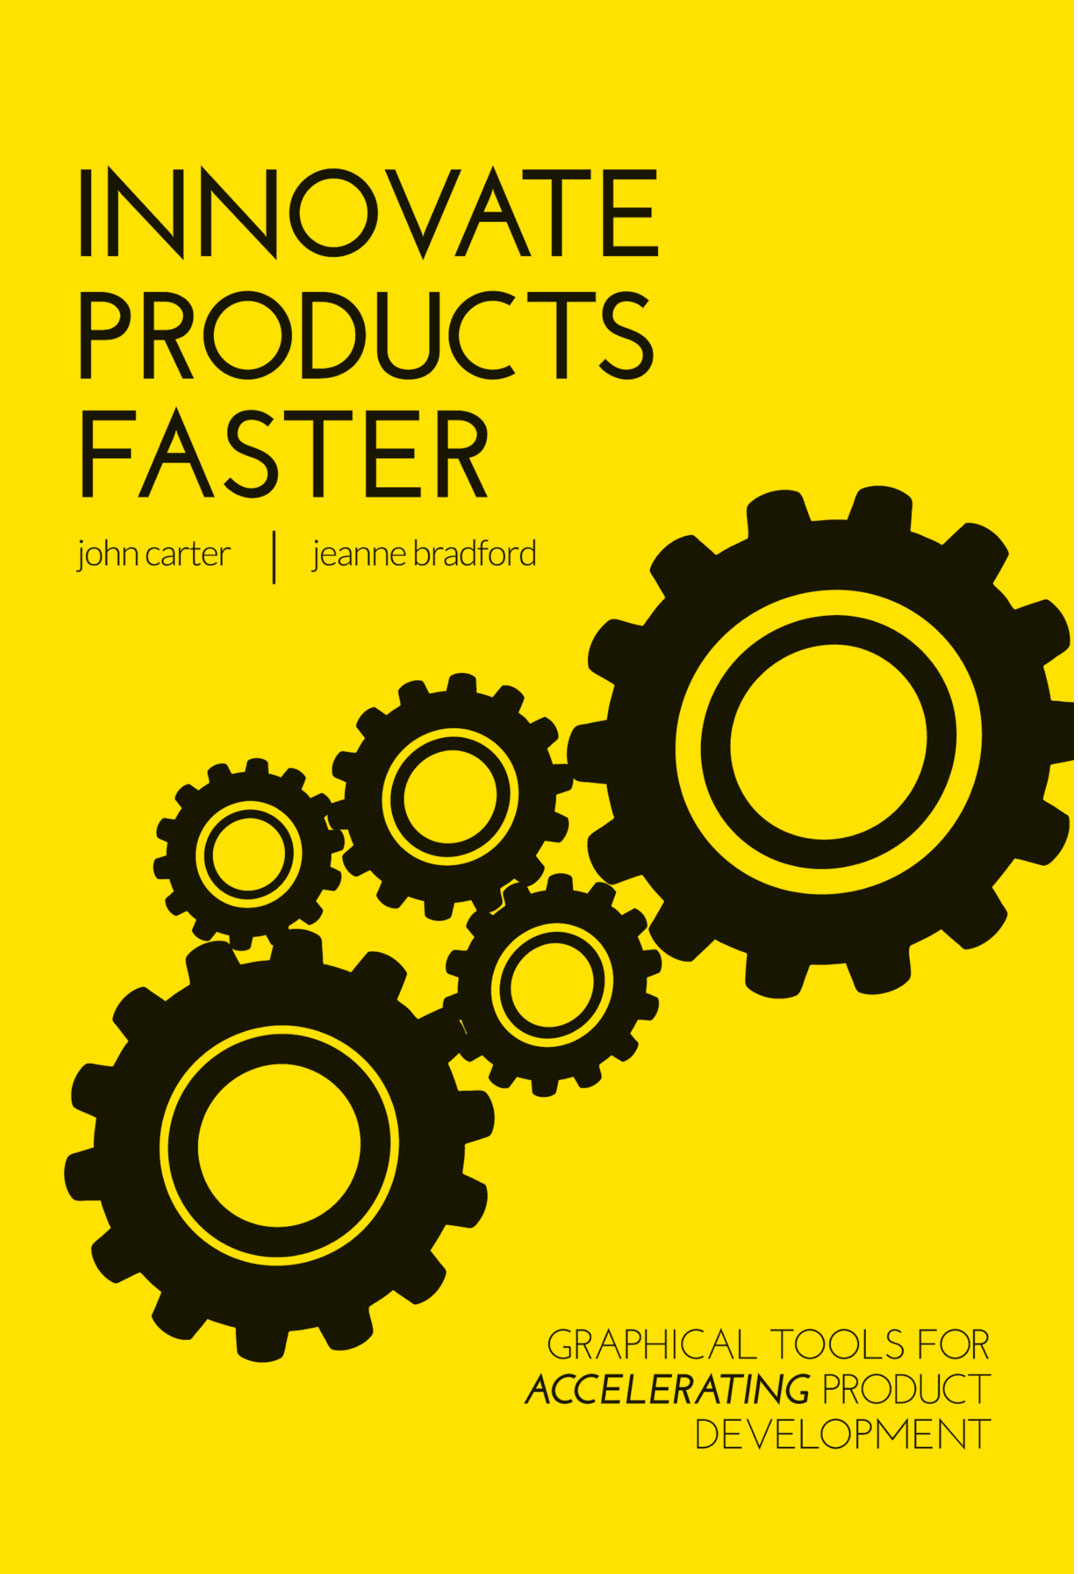 Innovate-products-faster.jpg